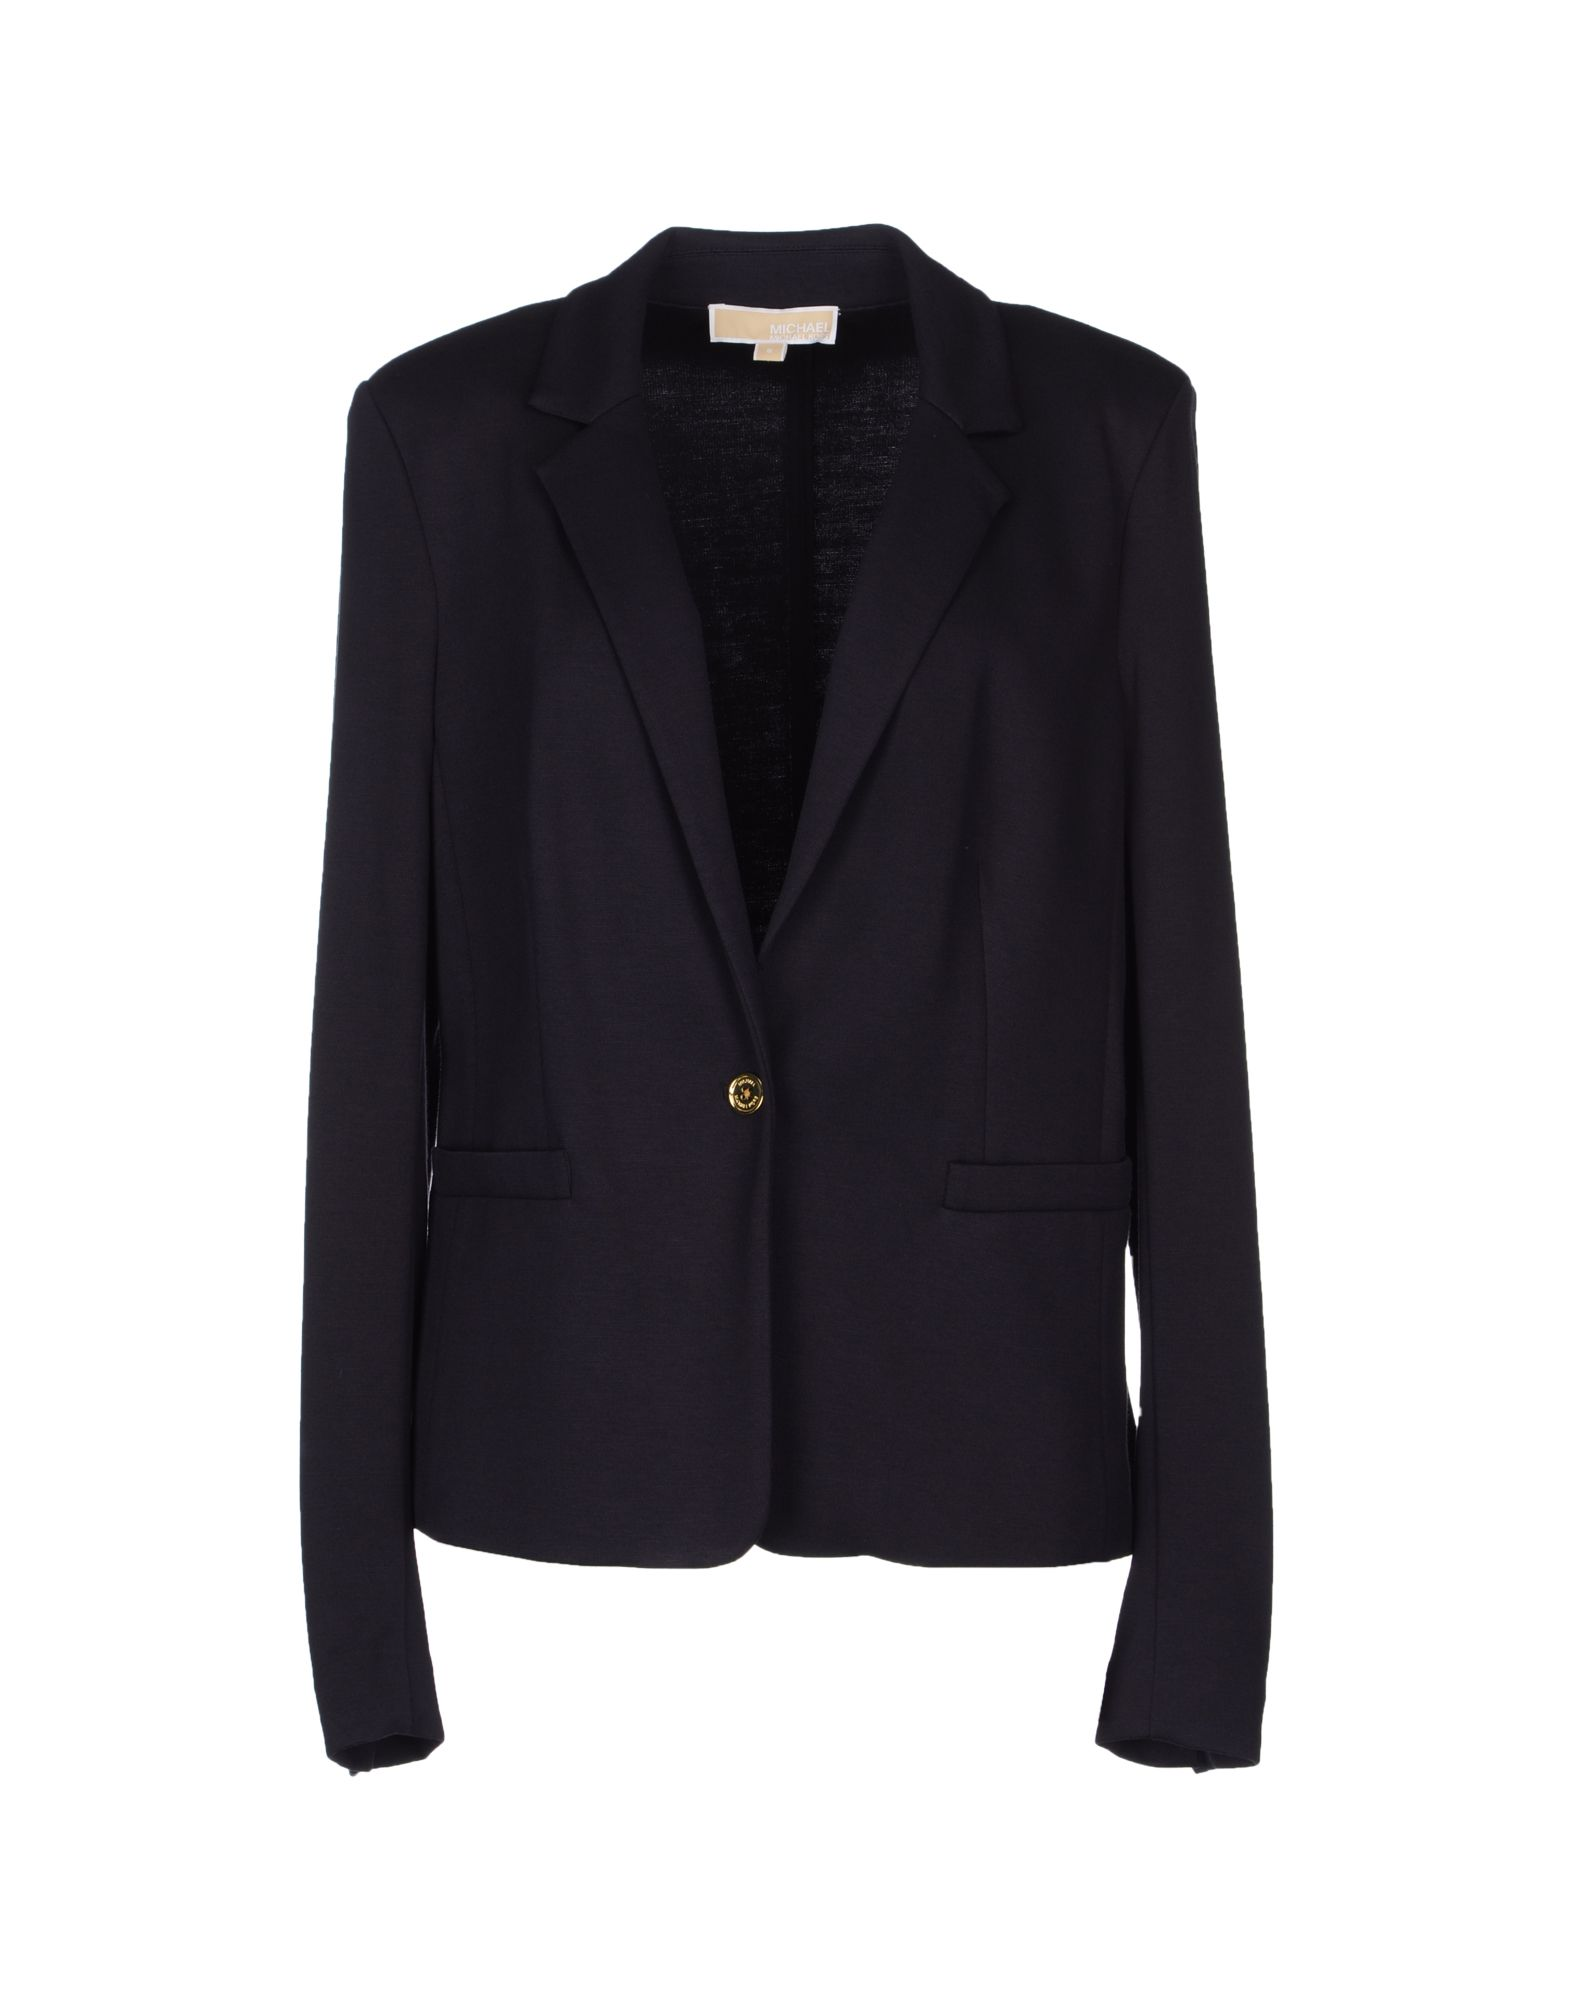 michael by michael kors blazer in blue dark blue lyst. Black Bedroom Furniture Sets. Home Design Ideas